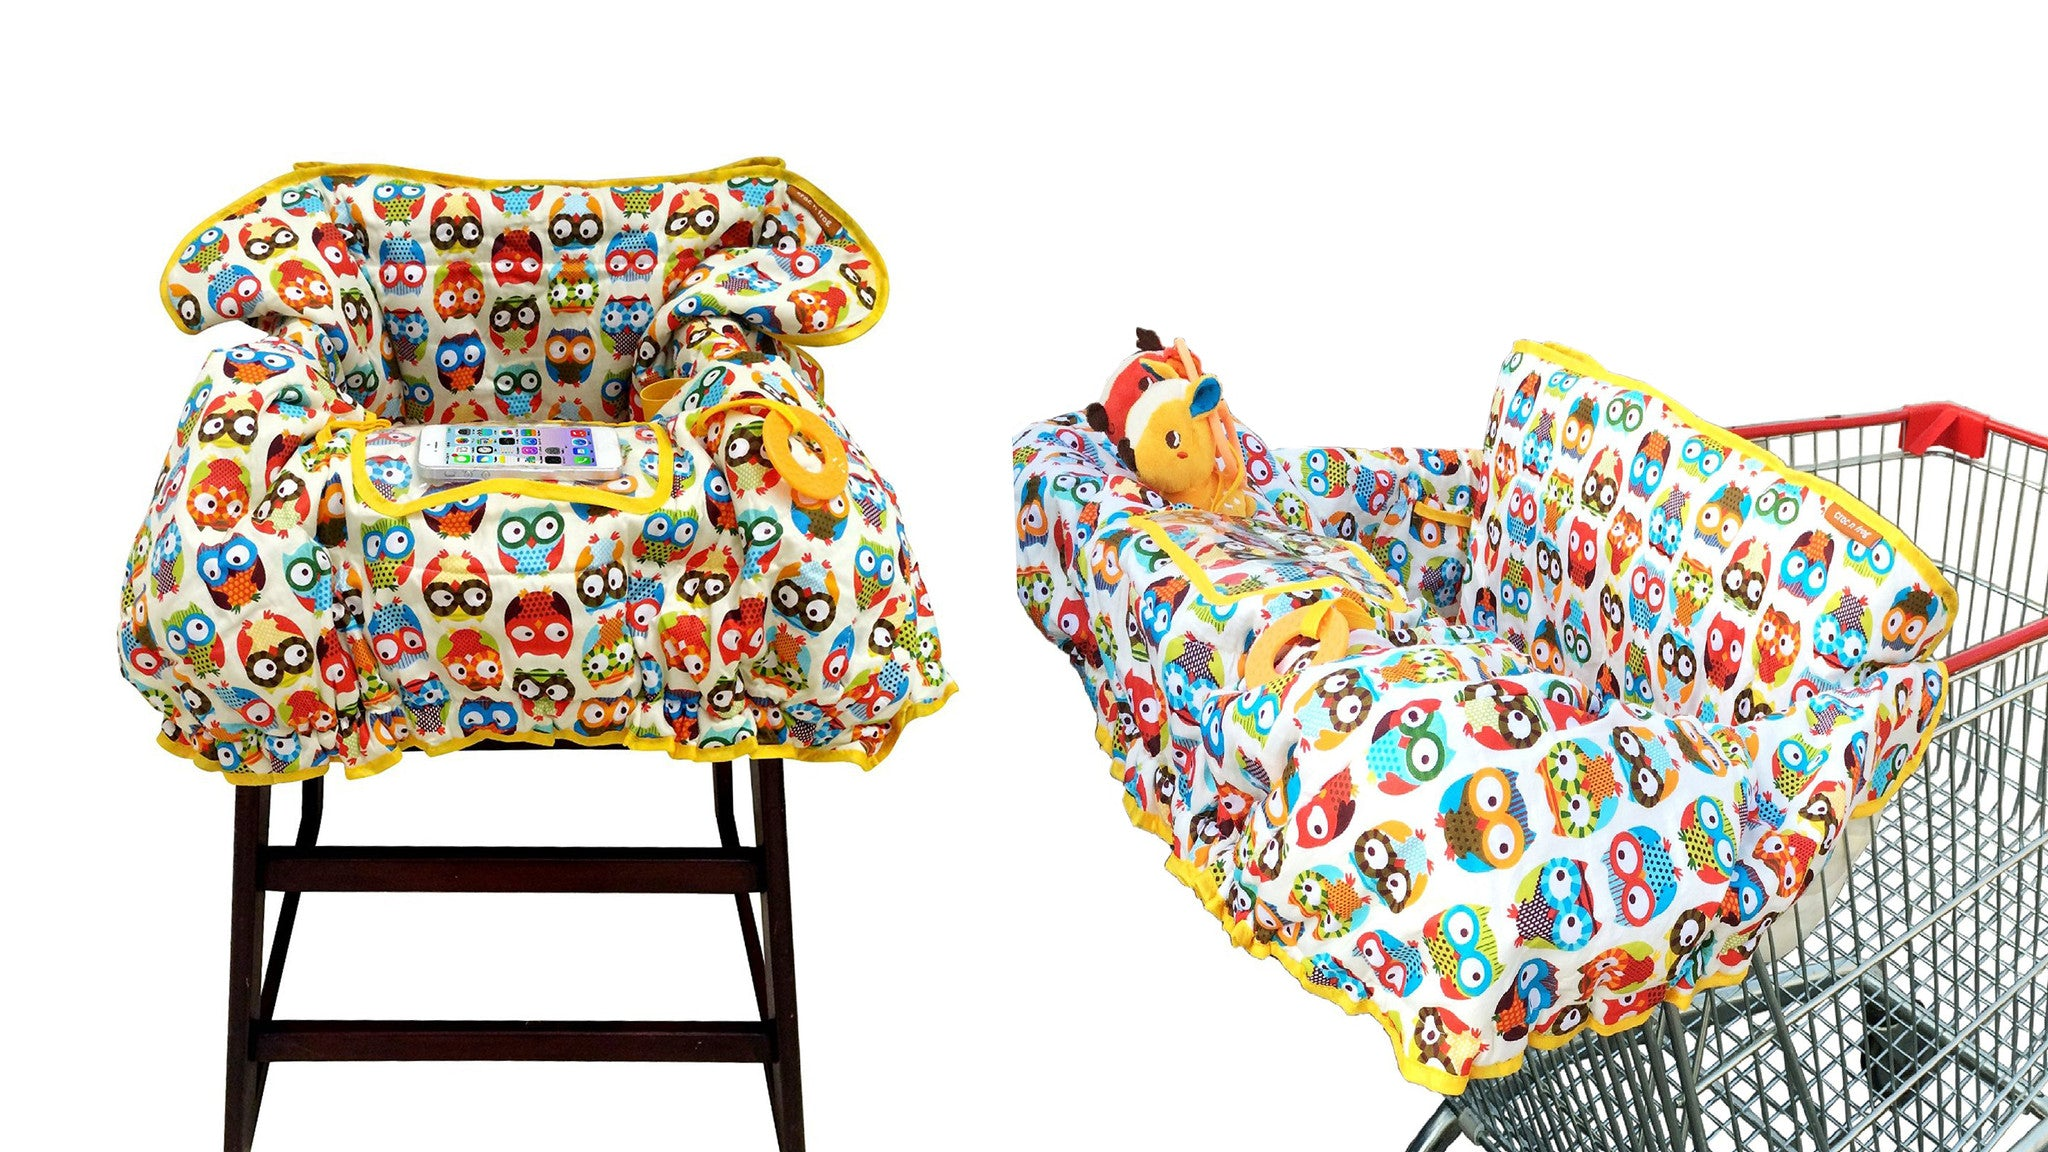 Evenflo expressions high chair zoo friends - Baby Shopping Cart Cover 2in1 High Chair Cover Large